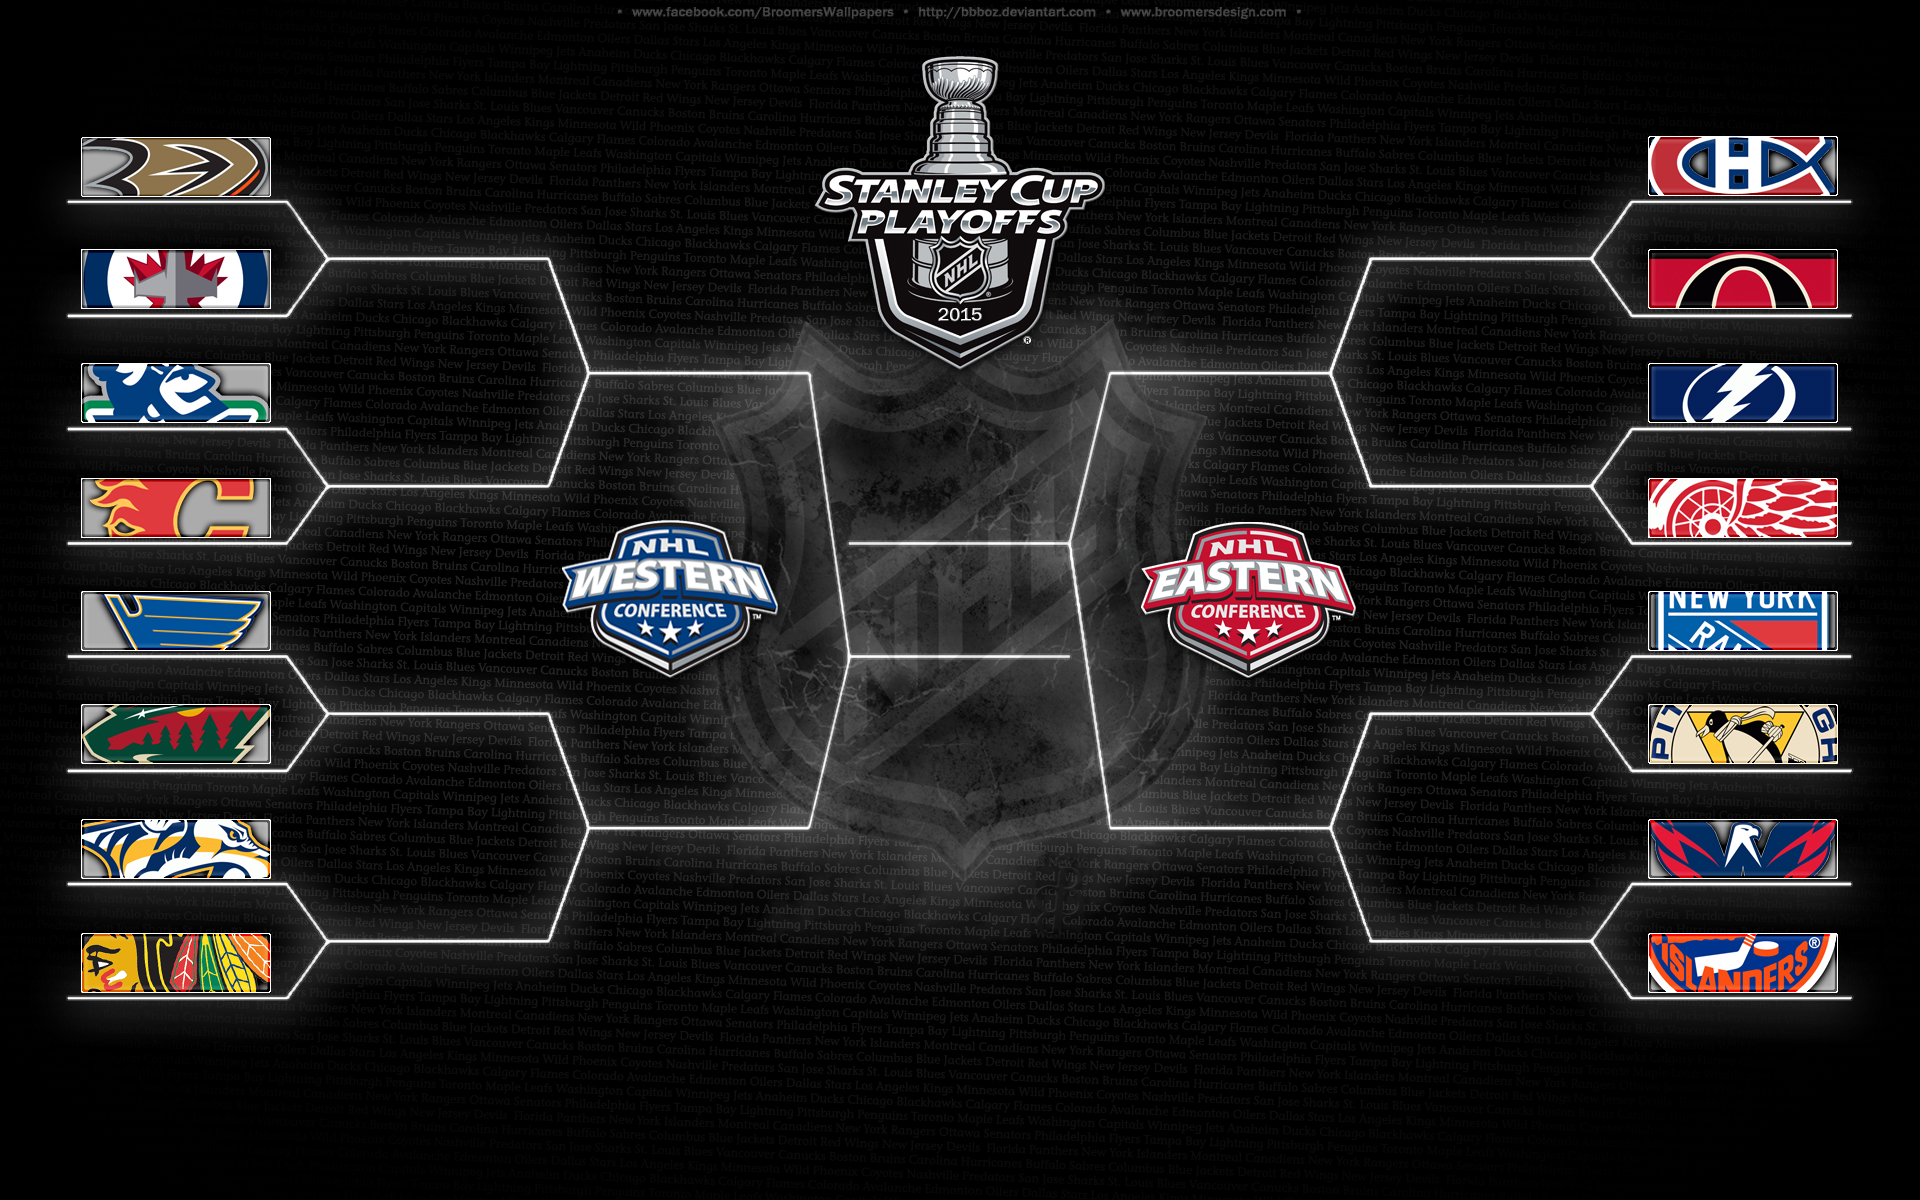 2015 NHL Playoff Bracket by bbboz on DeviantArt